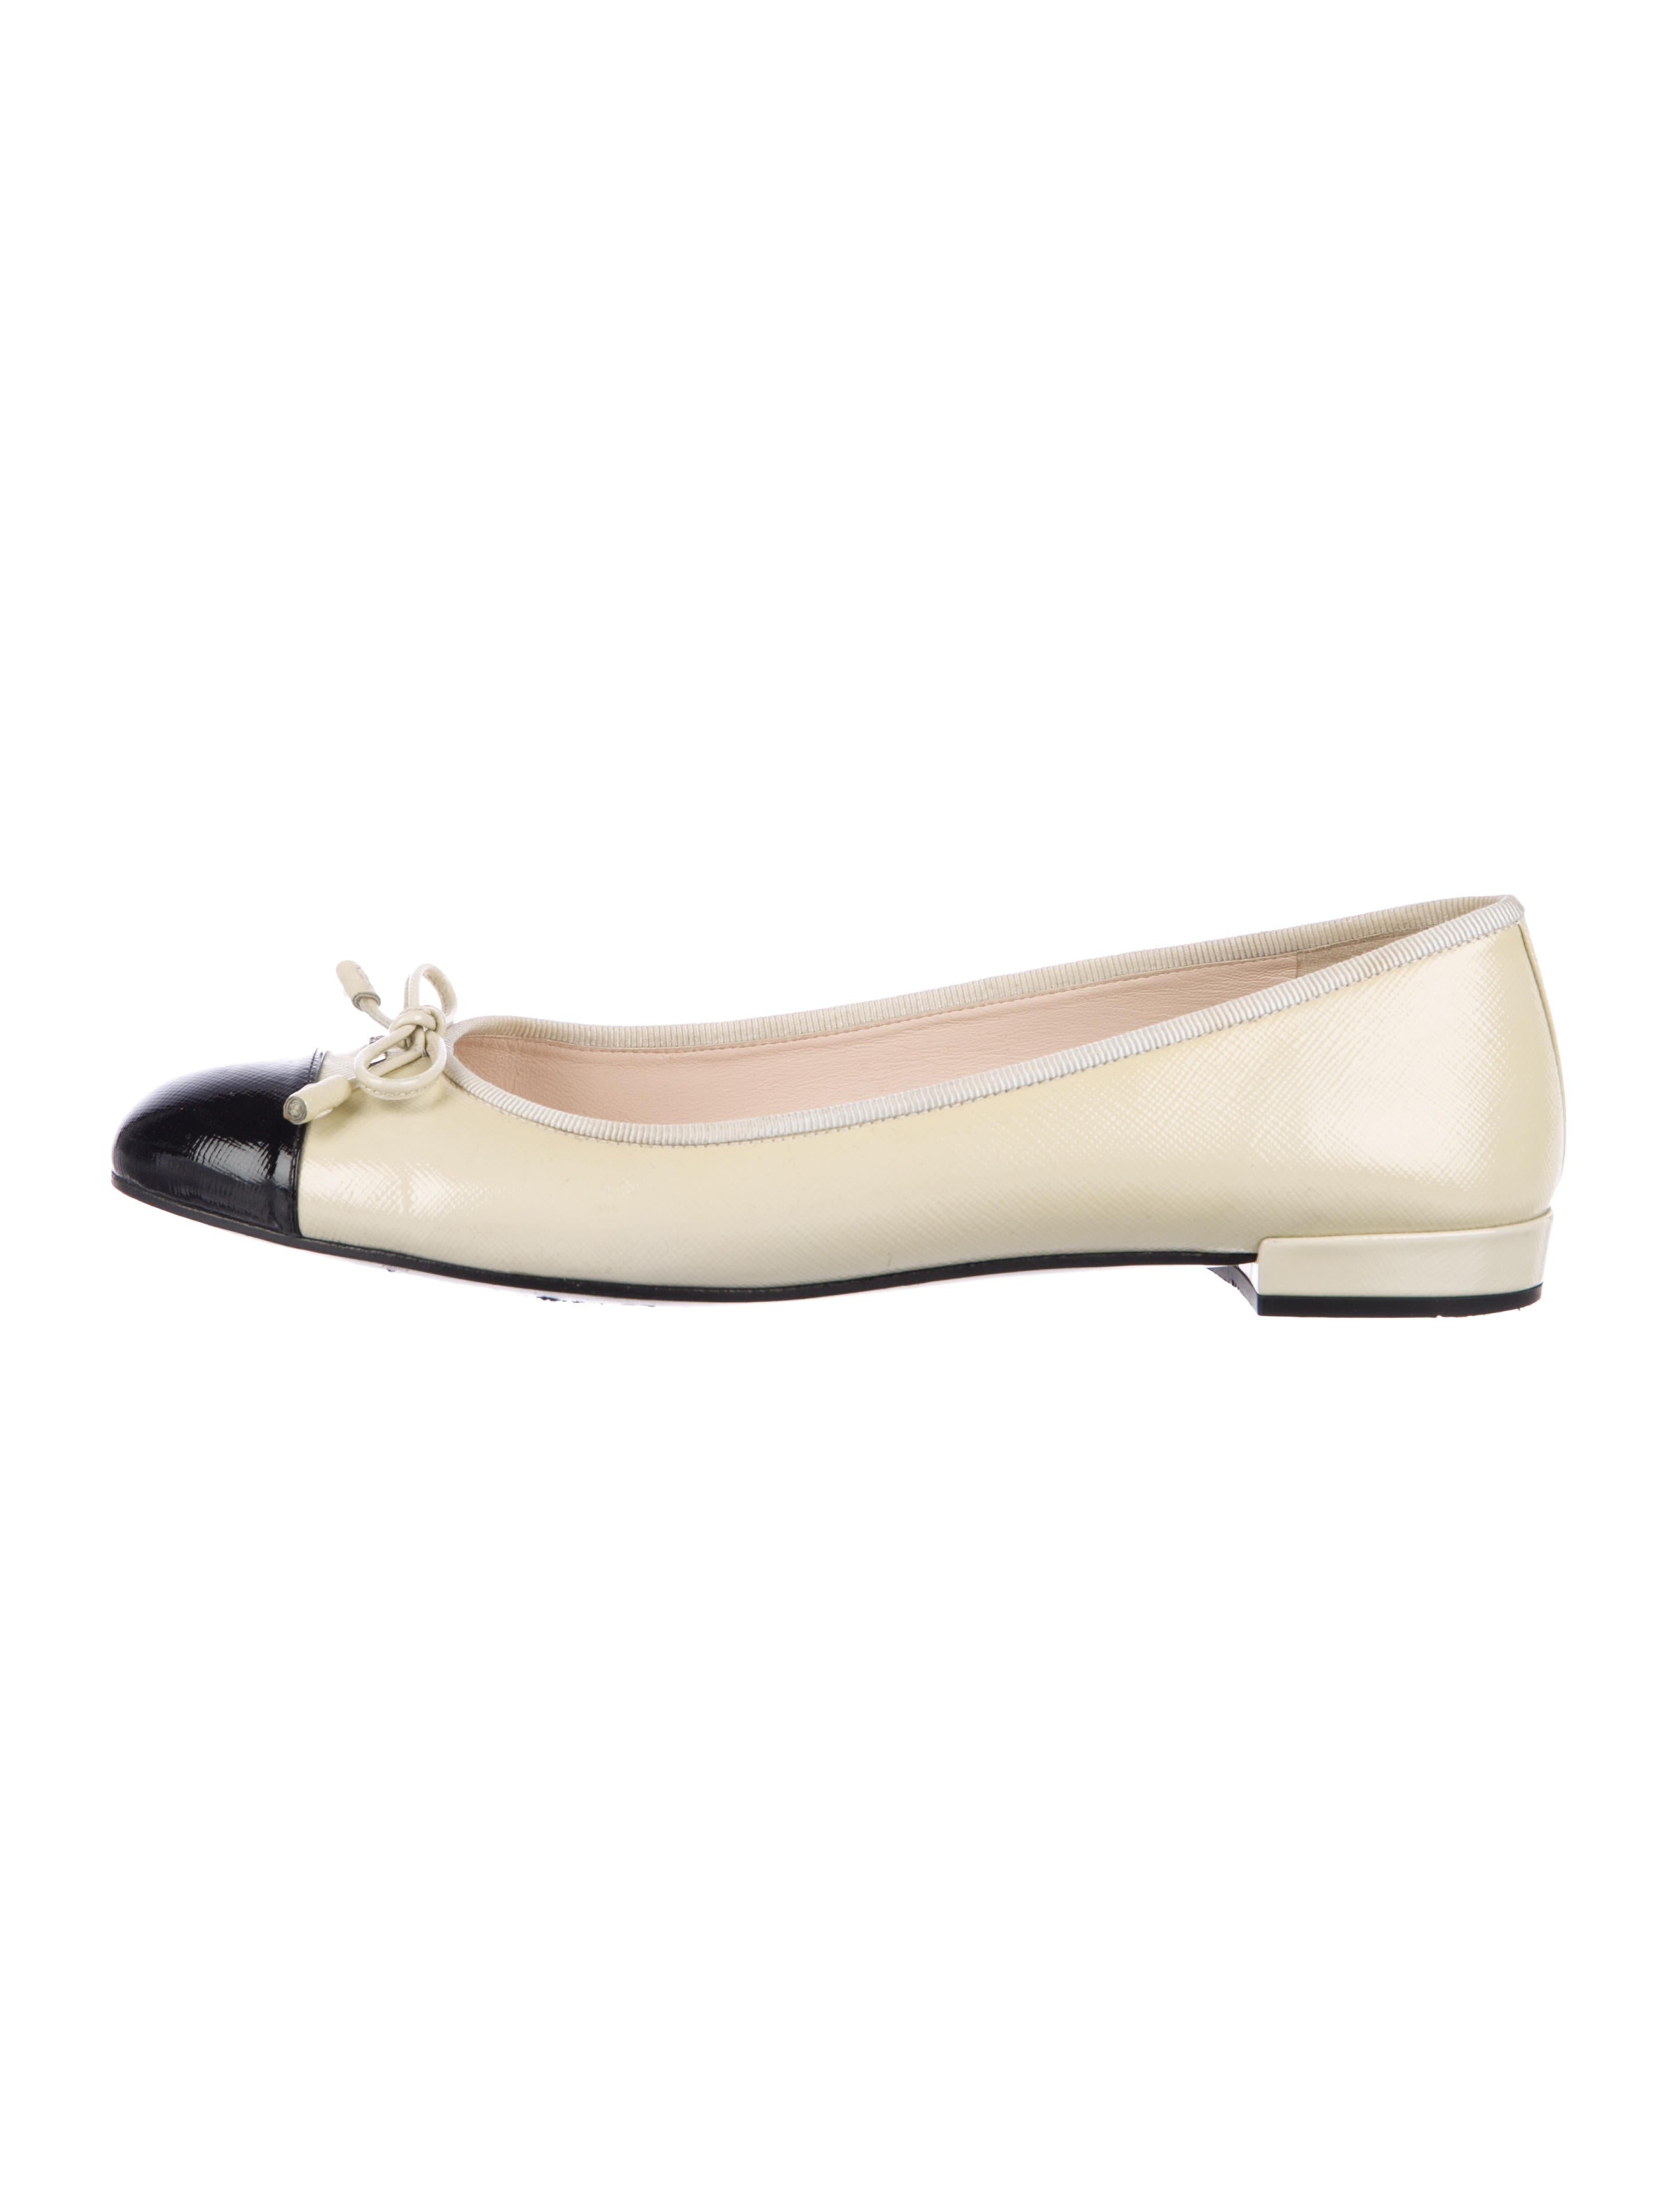 9a3fad3c46 Prada Leather Cap-Toe Flats - Shoes - PRA219962 | The RealReal